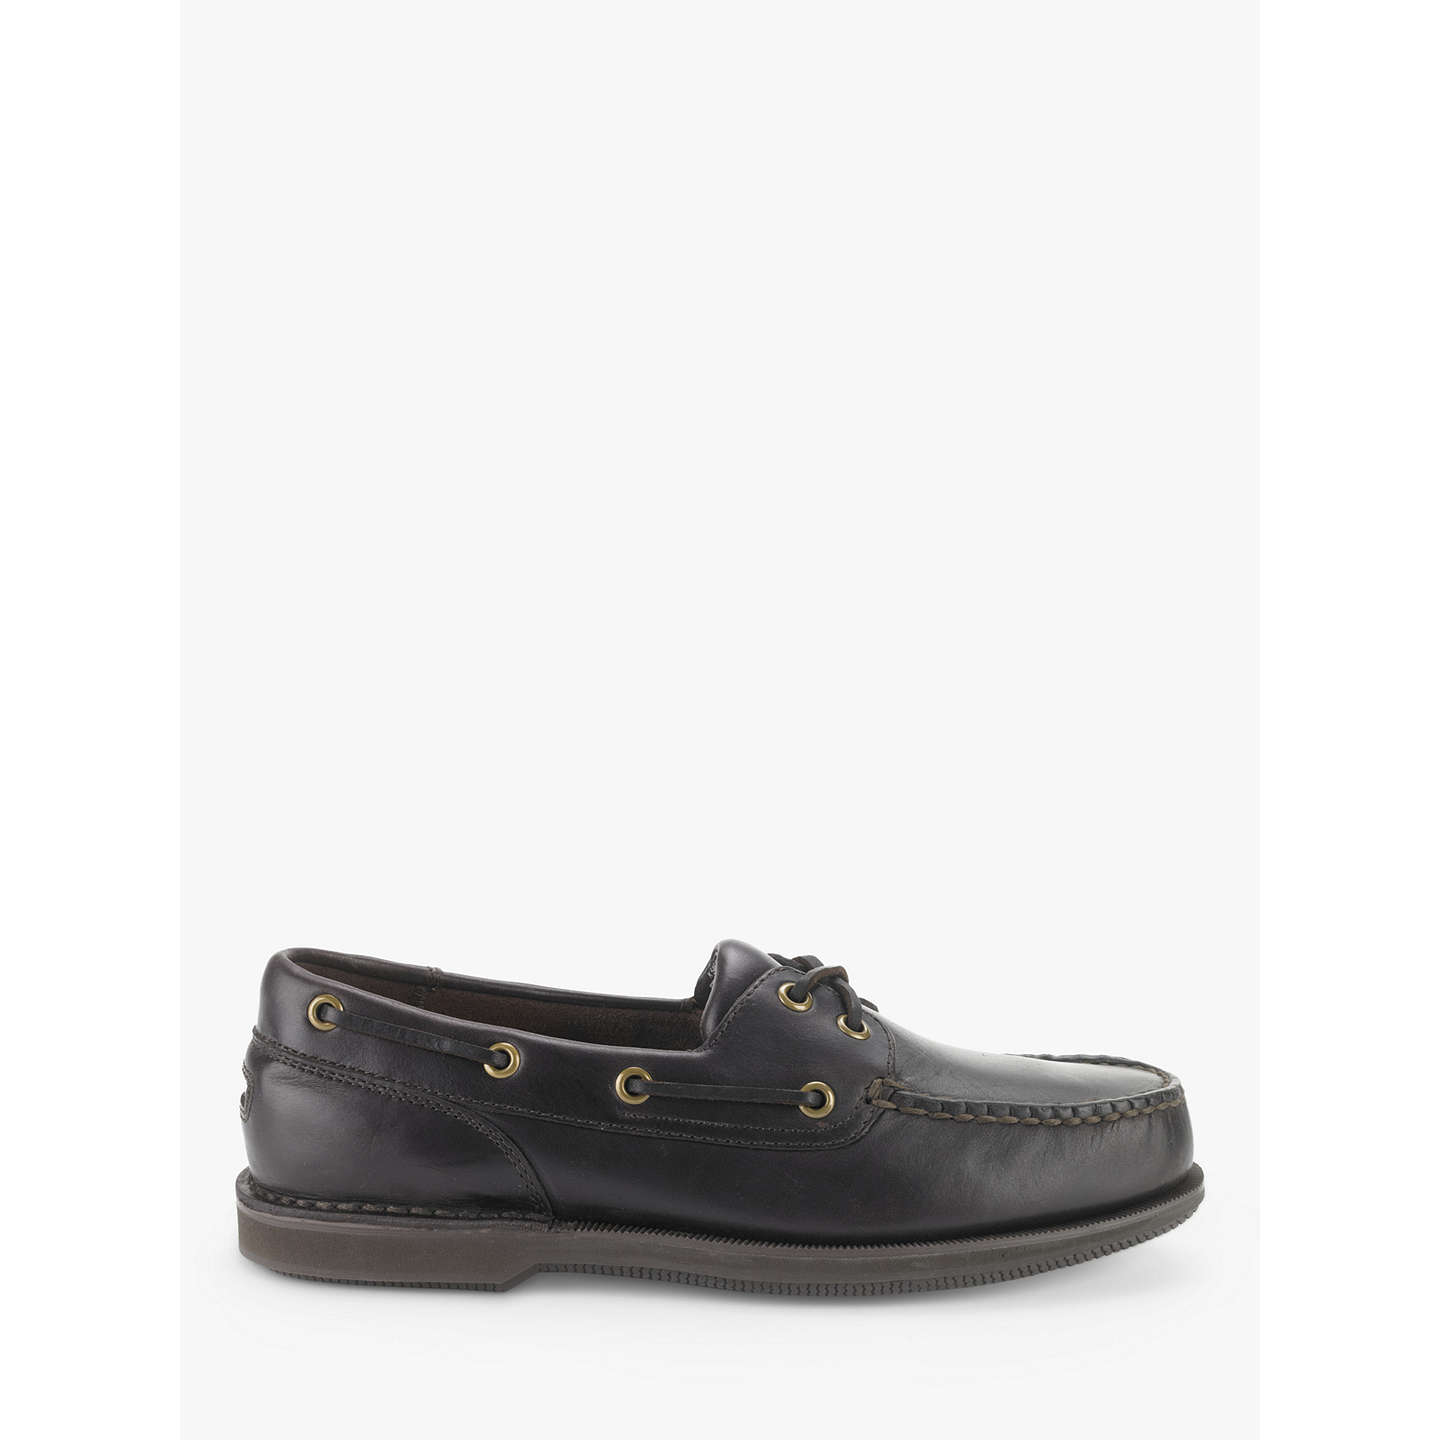 BuyRockport Perth Boat Shoe, Dark Brown, 7 Online at johnlewis.com ...